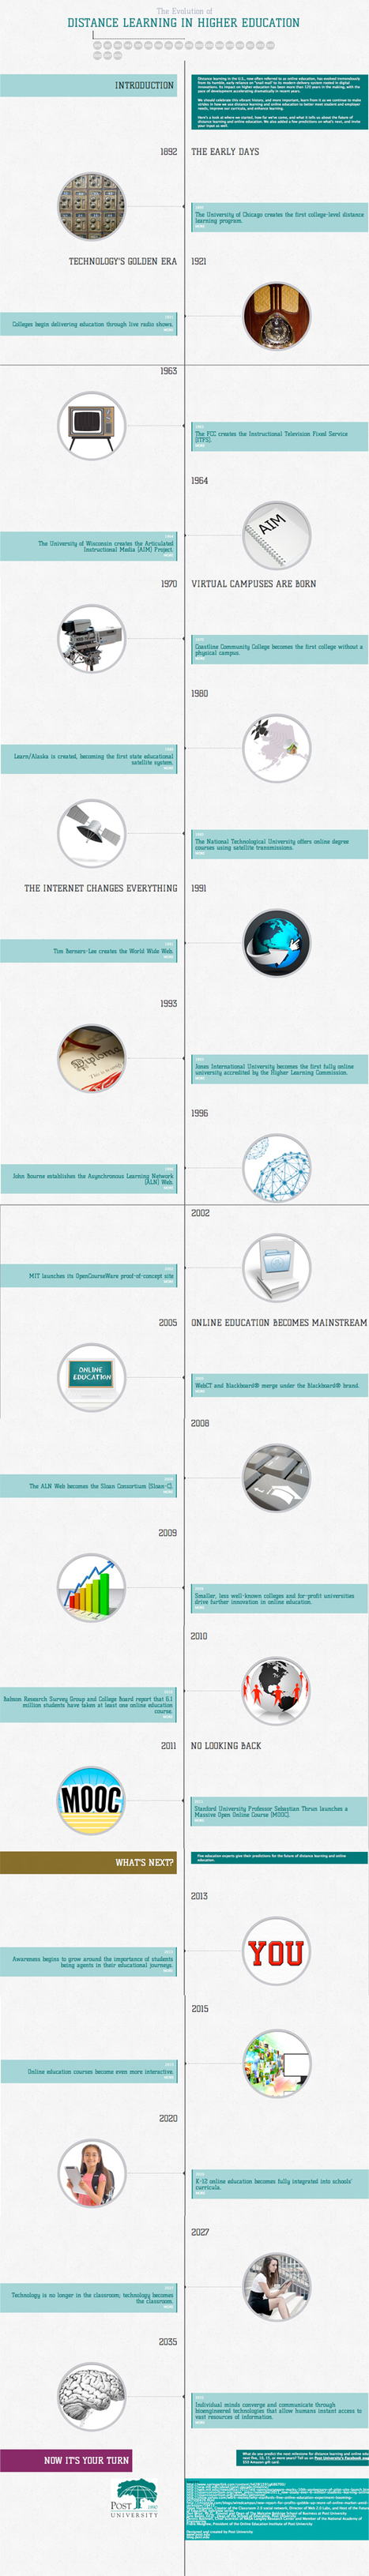 Distance Education History and Future Steps Detailed in Infographic | iEduc | Scoop.it